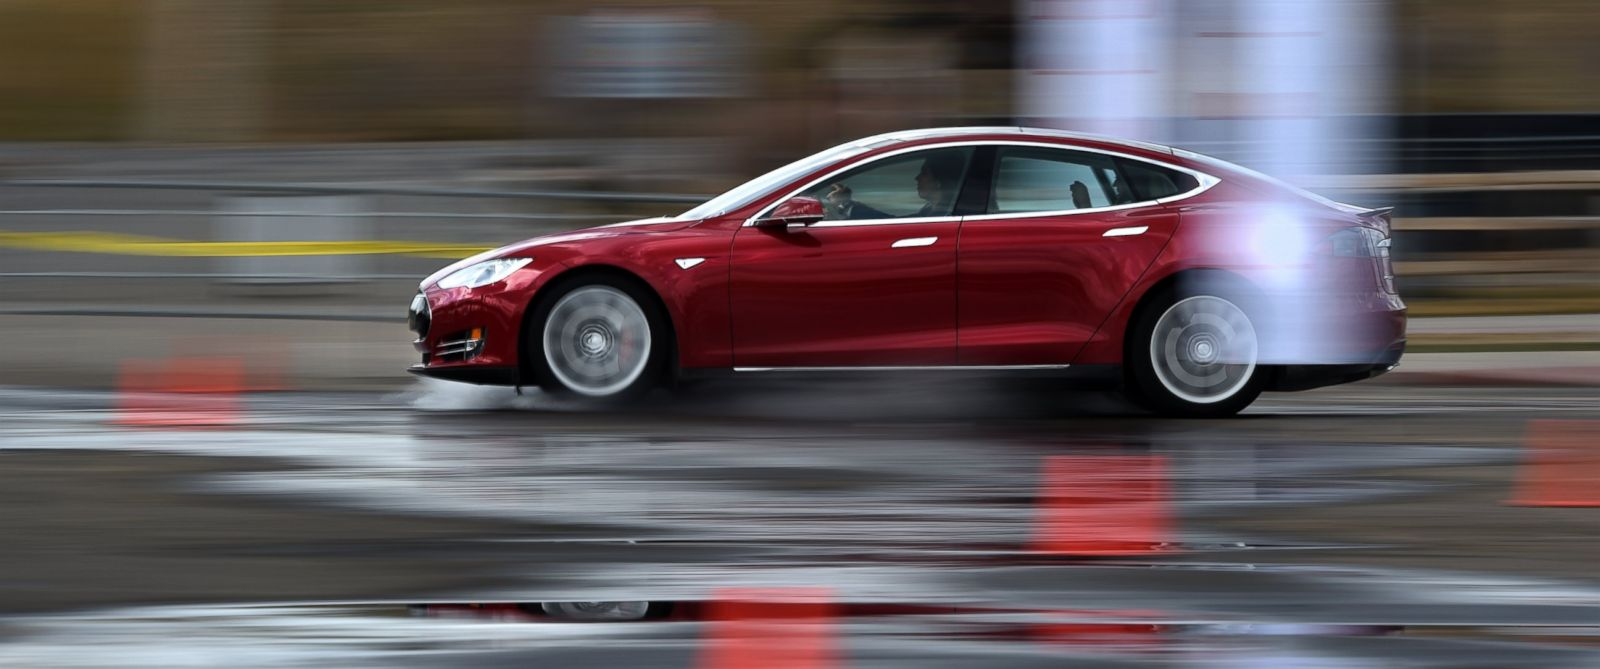 PHOTO: Clients and media were offered an opportunity to drive the Tesla Motors P85D Model S during a demonstration at Sports Authority Field in Denver, March 13, 2015.